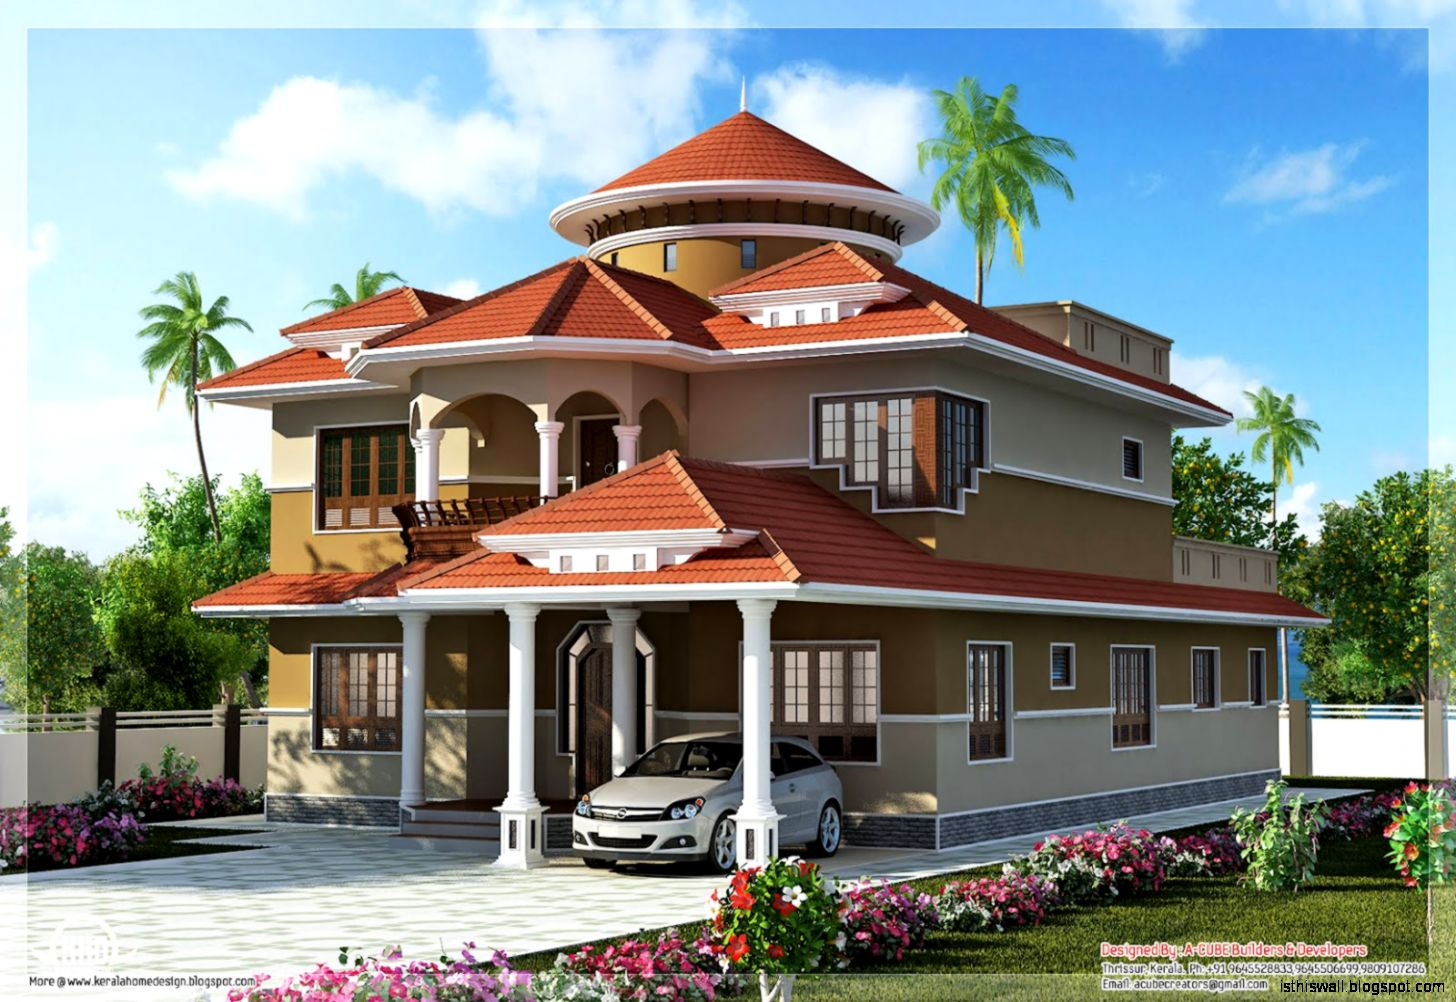 Two Storey Shed Plans Images - Good home design